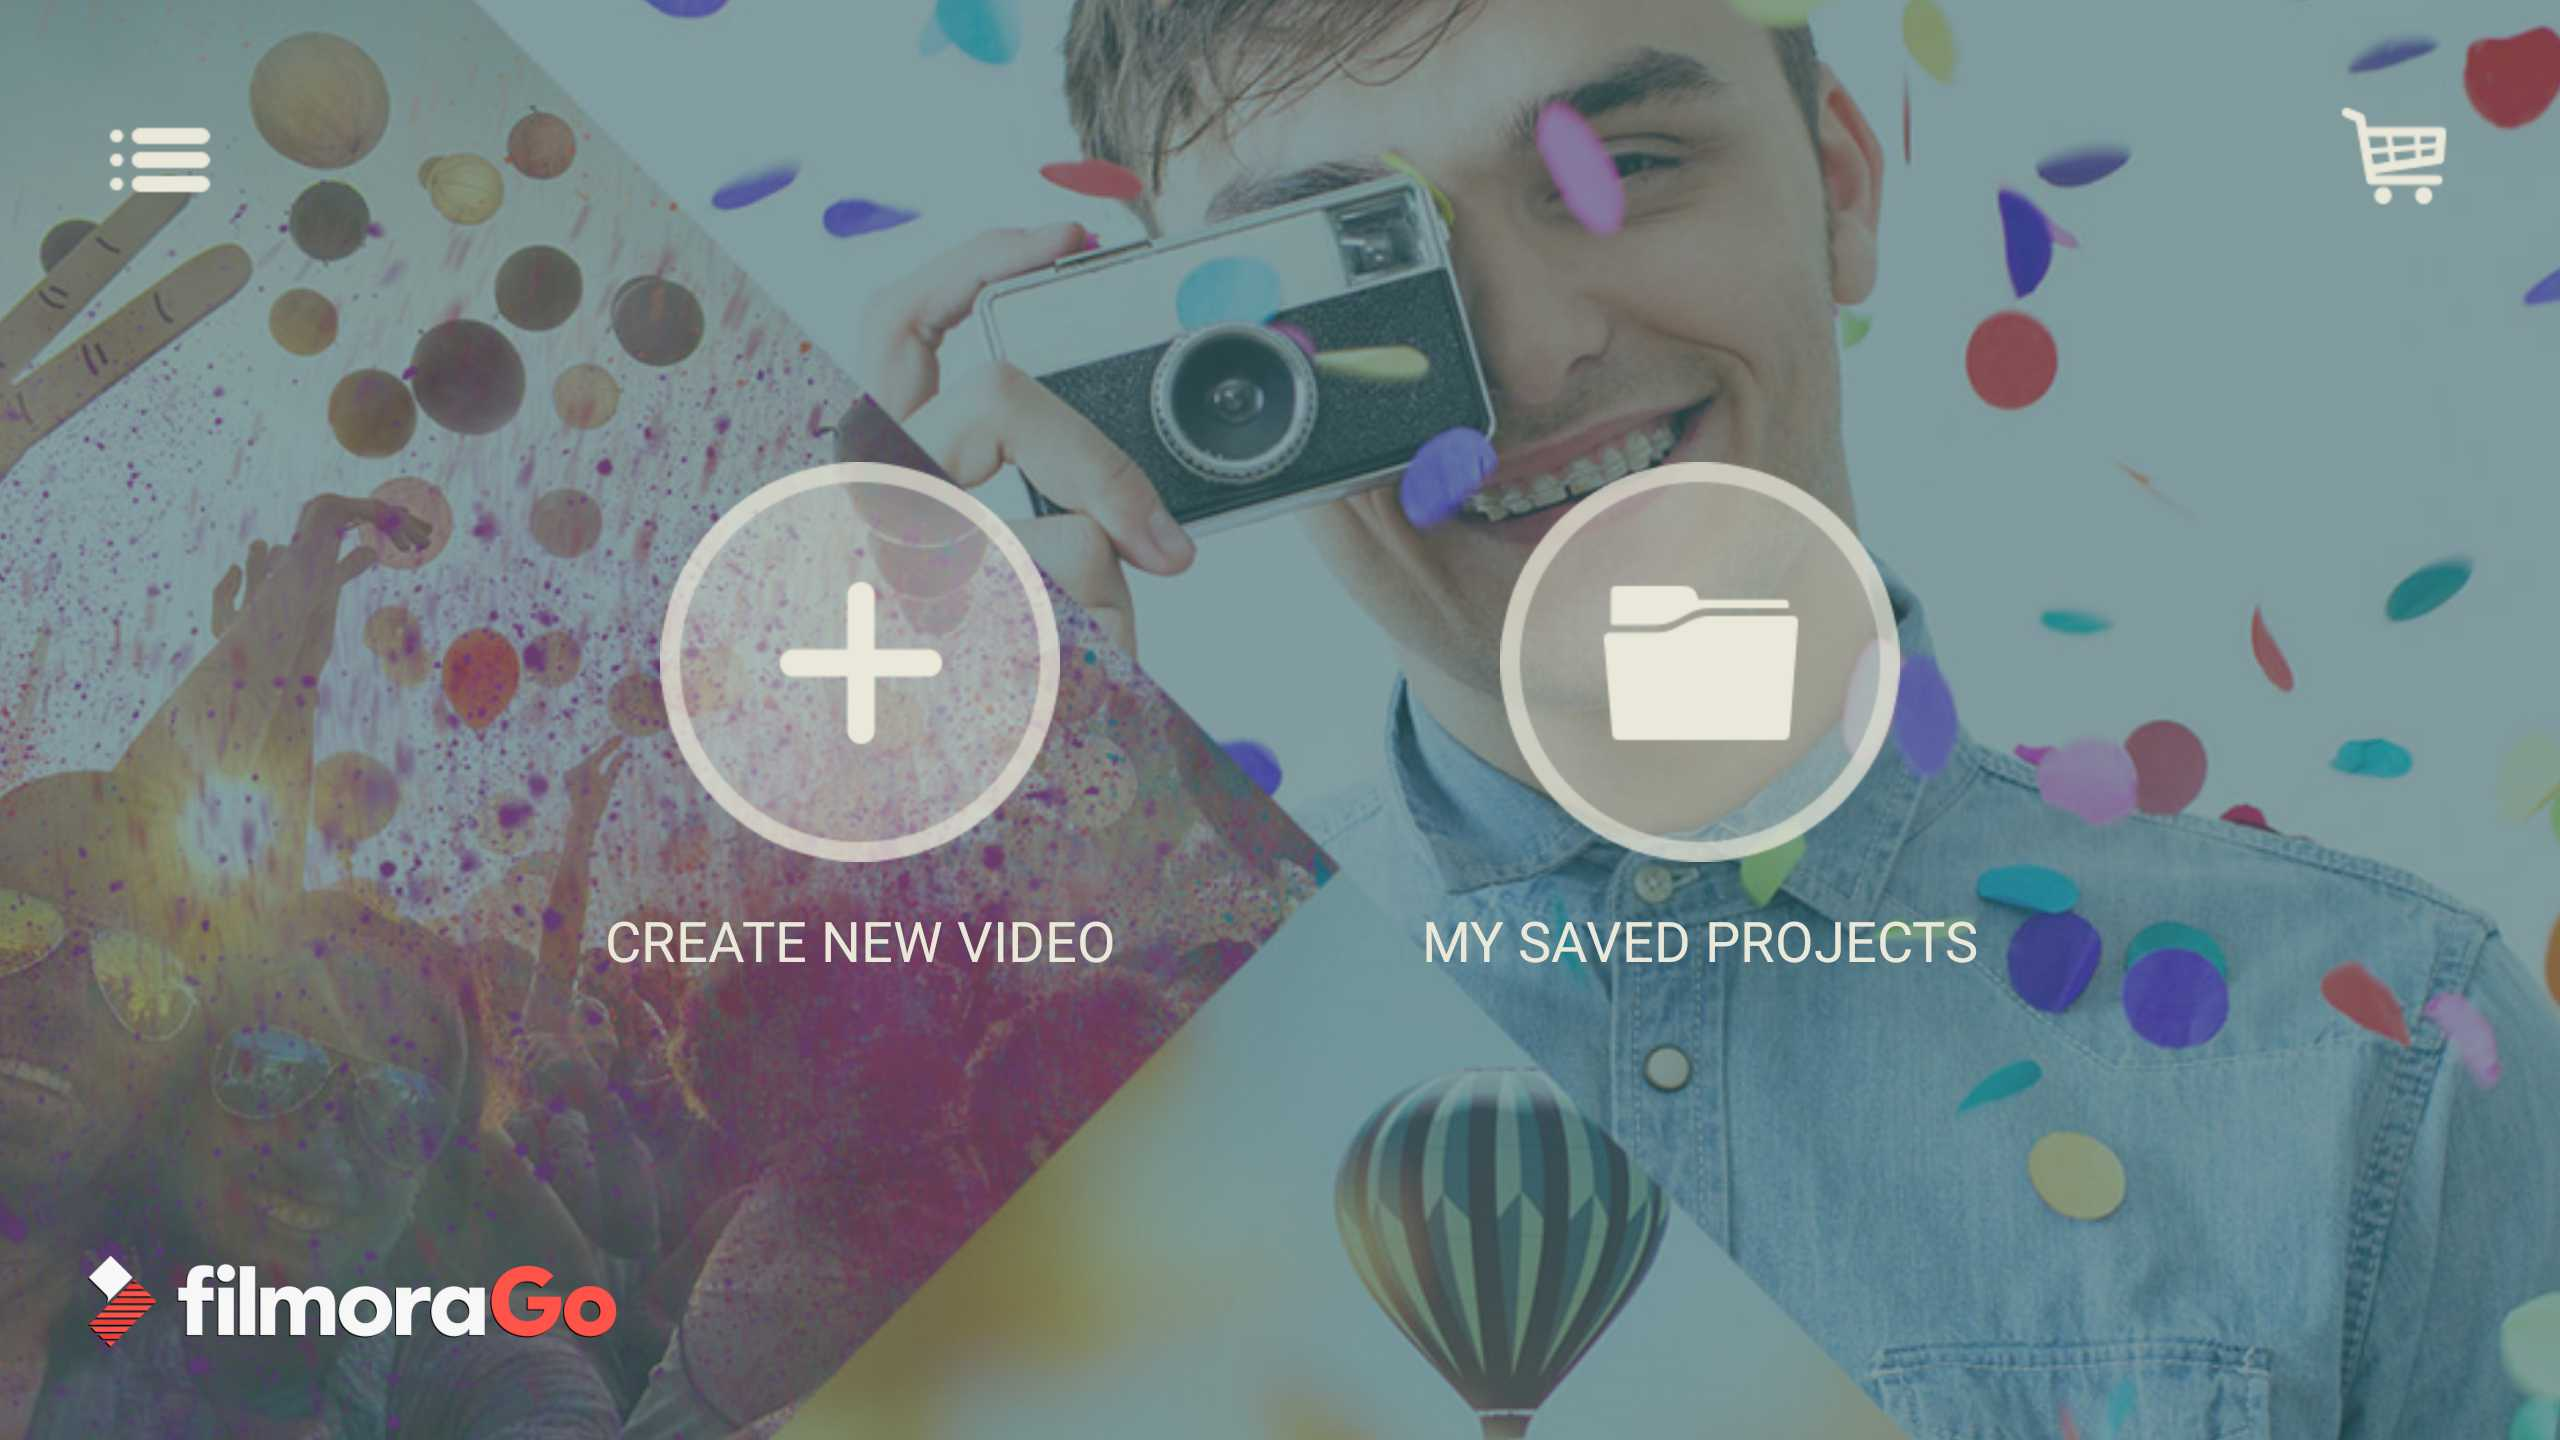 Homescreen of FilmoraGo app with new video and save projects buttons